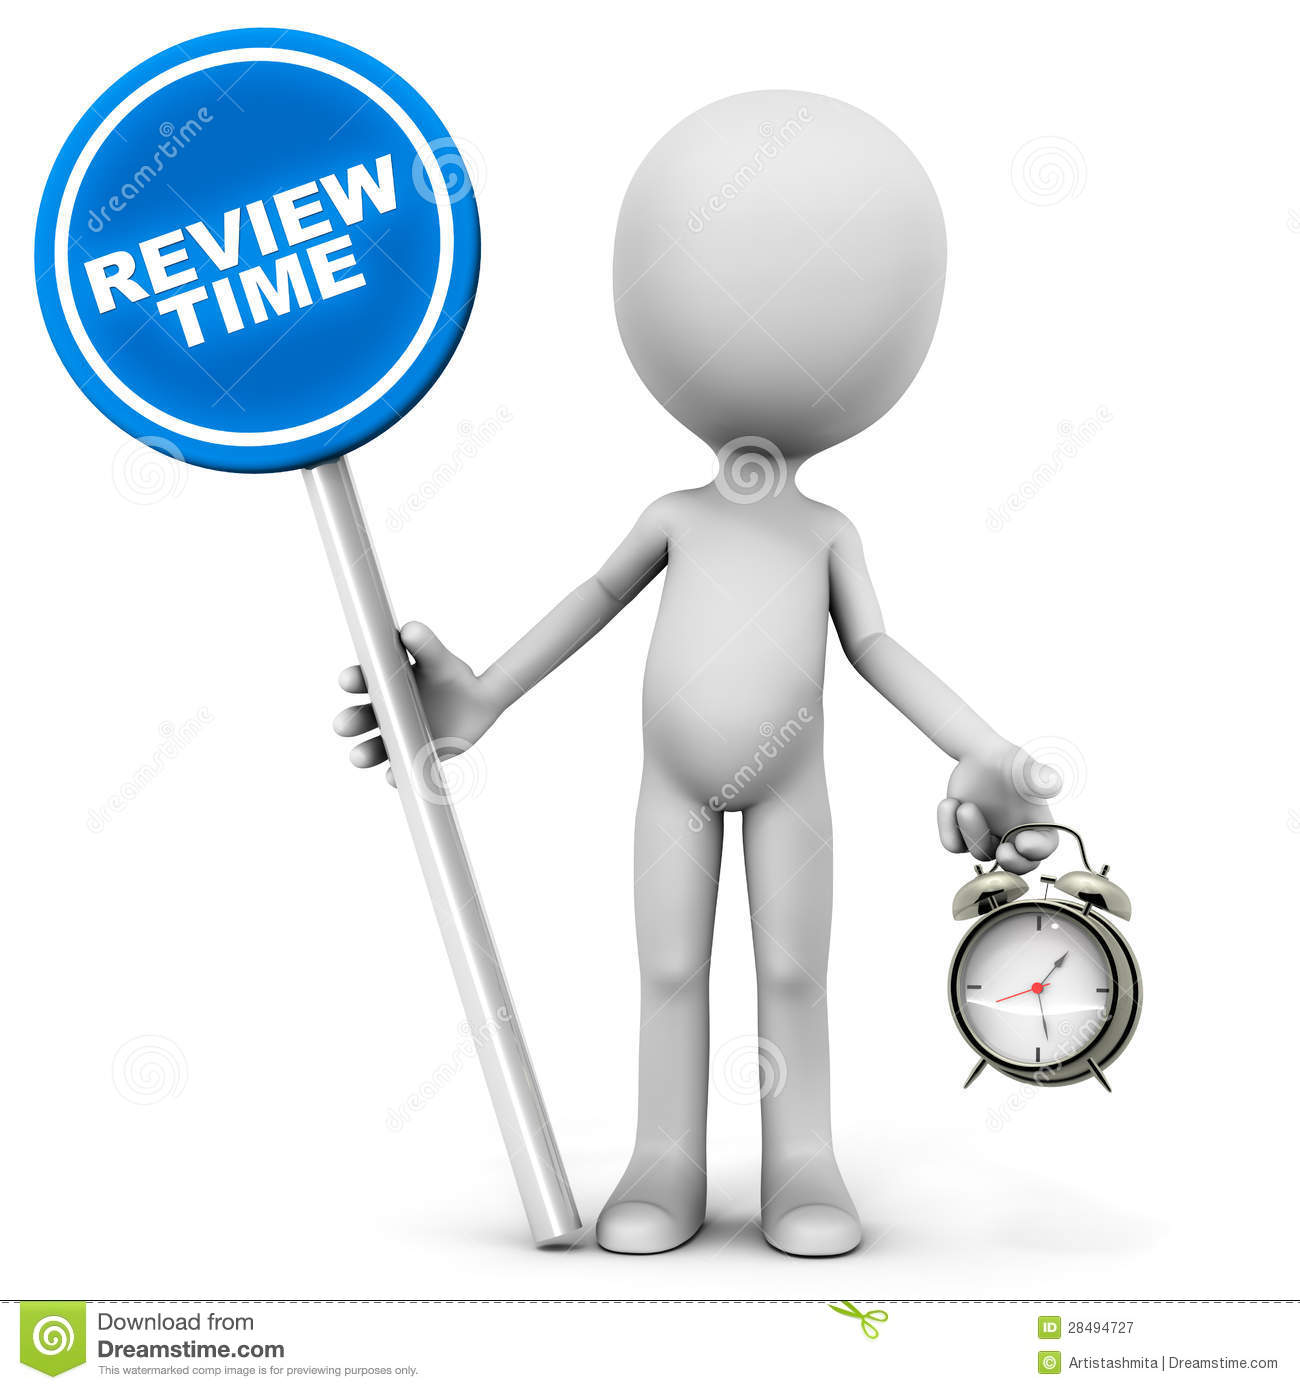 1527 Review free clipart.